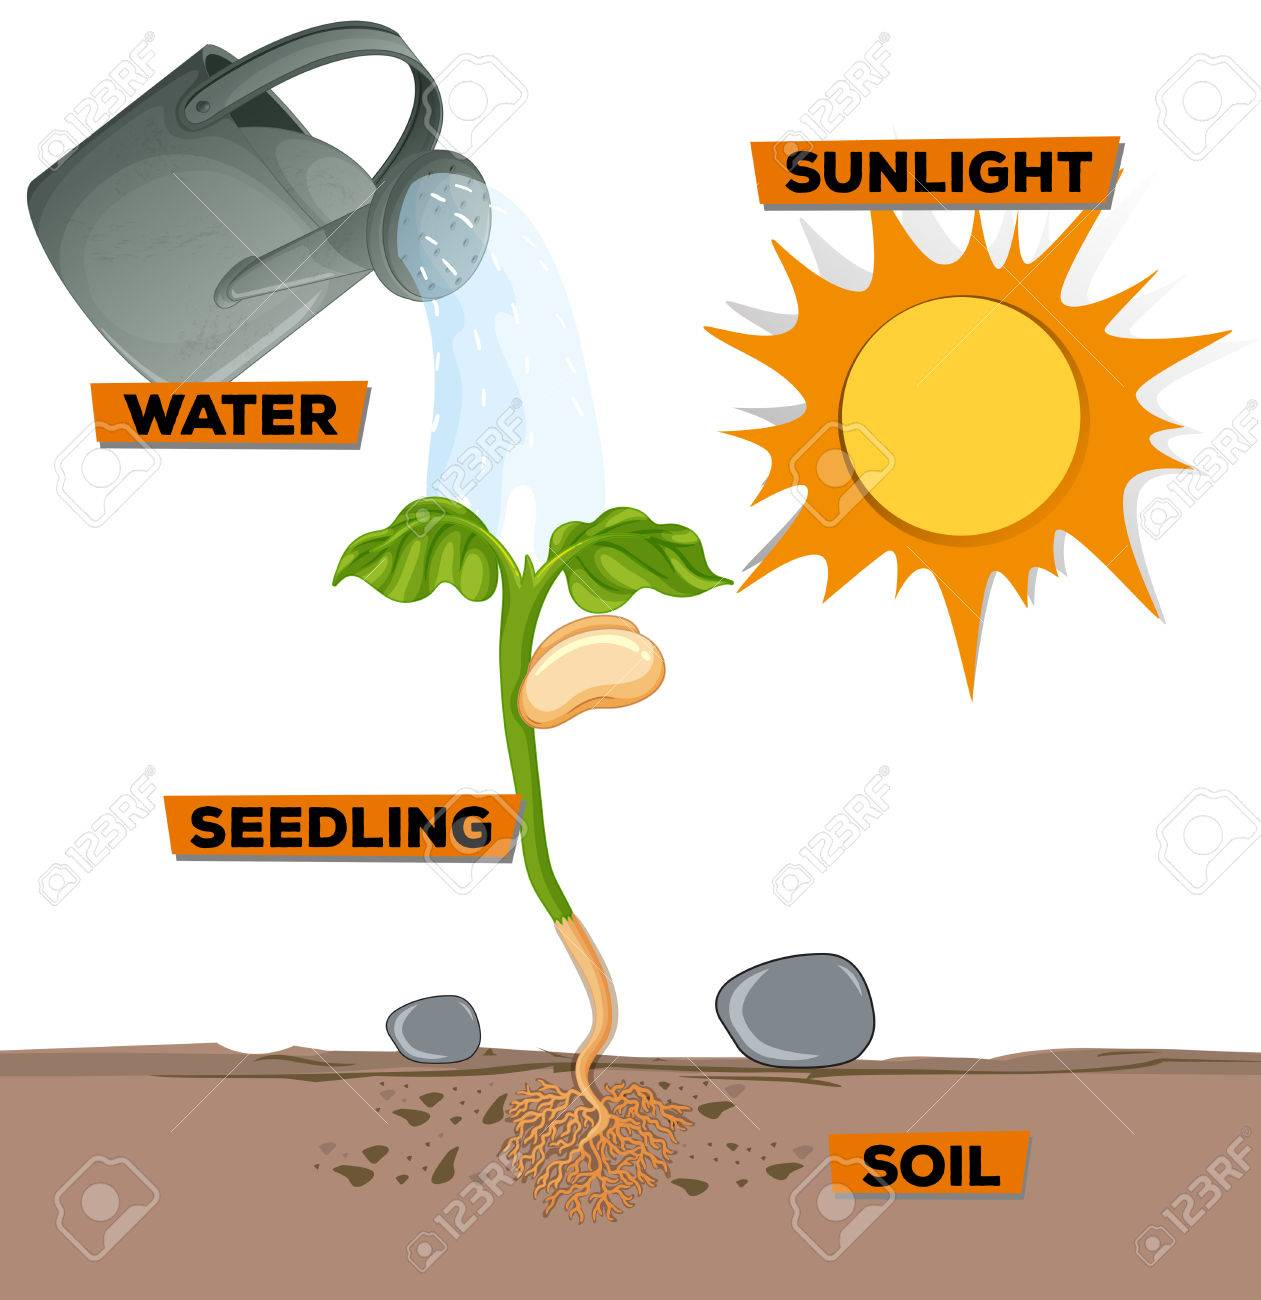 Diagram showing plant growing from water and sunlight illustration diagram showing plant growing from water and sunlight illustration imagens 67924858 ccuart Image collections